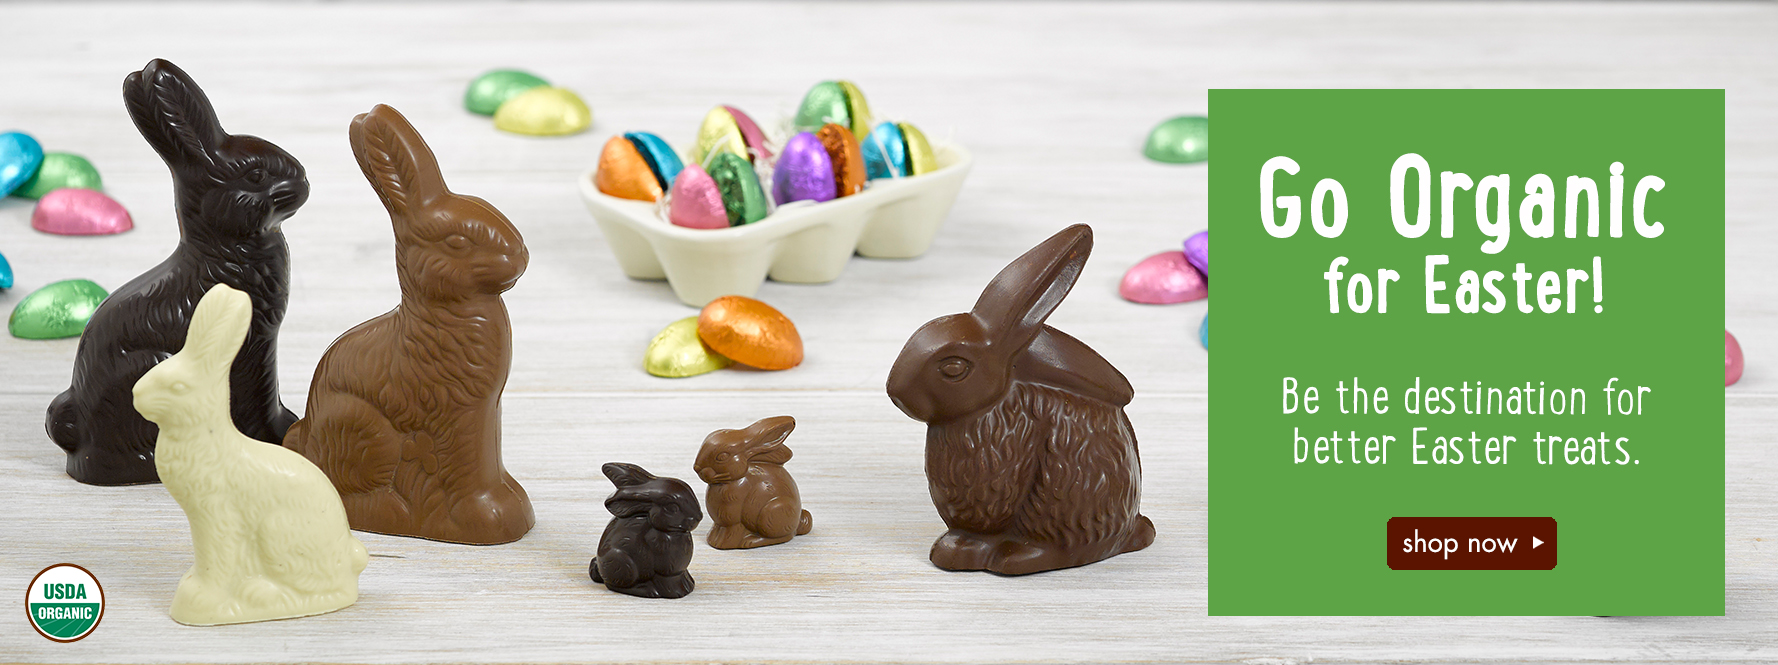 Organic Wholesale Easter Chocolates: chocolate bunnies, carrots, eggs, and more!